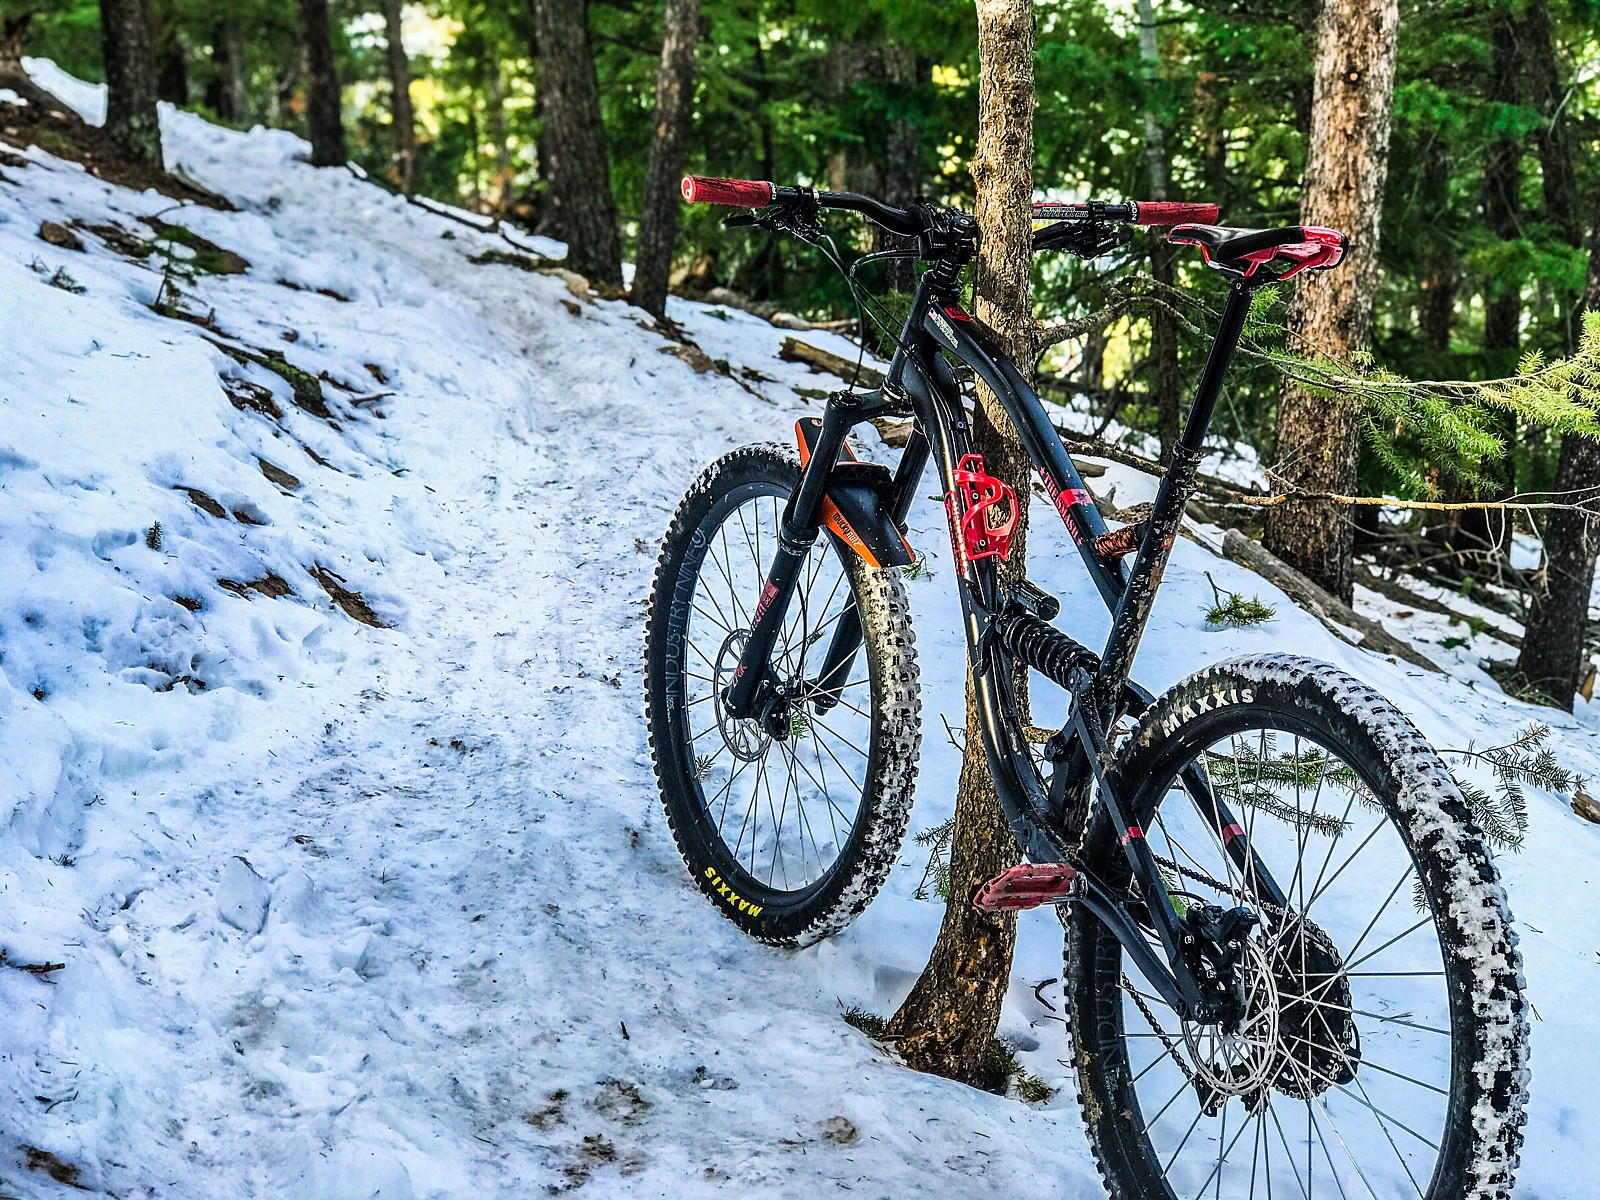 Smash in the snow  - The Notorious PFC MTB - Mountain Biking Pictures - Vital MTB